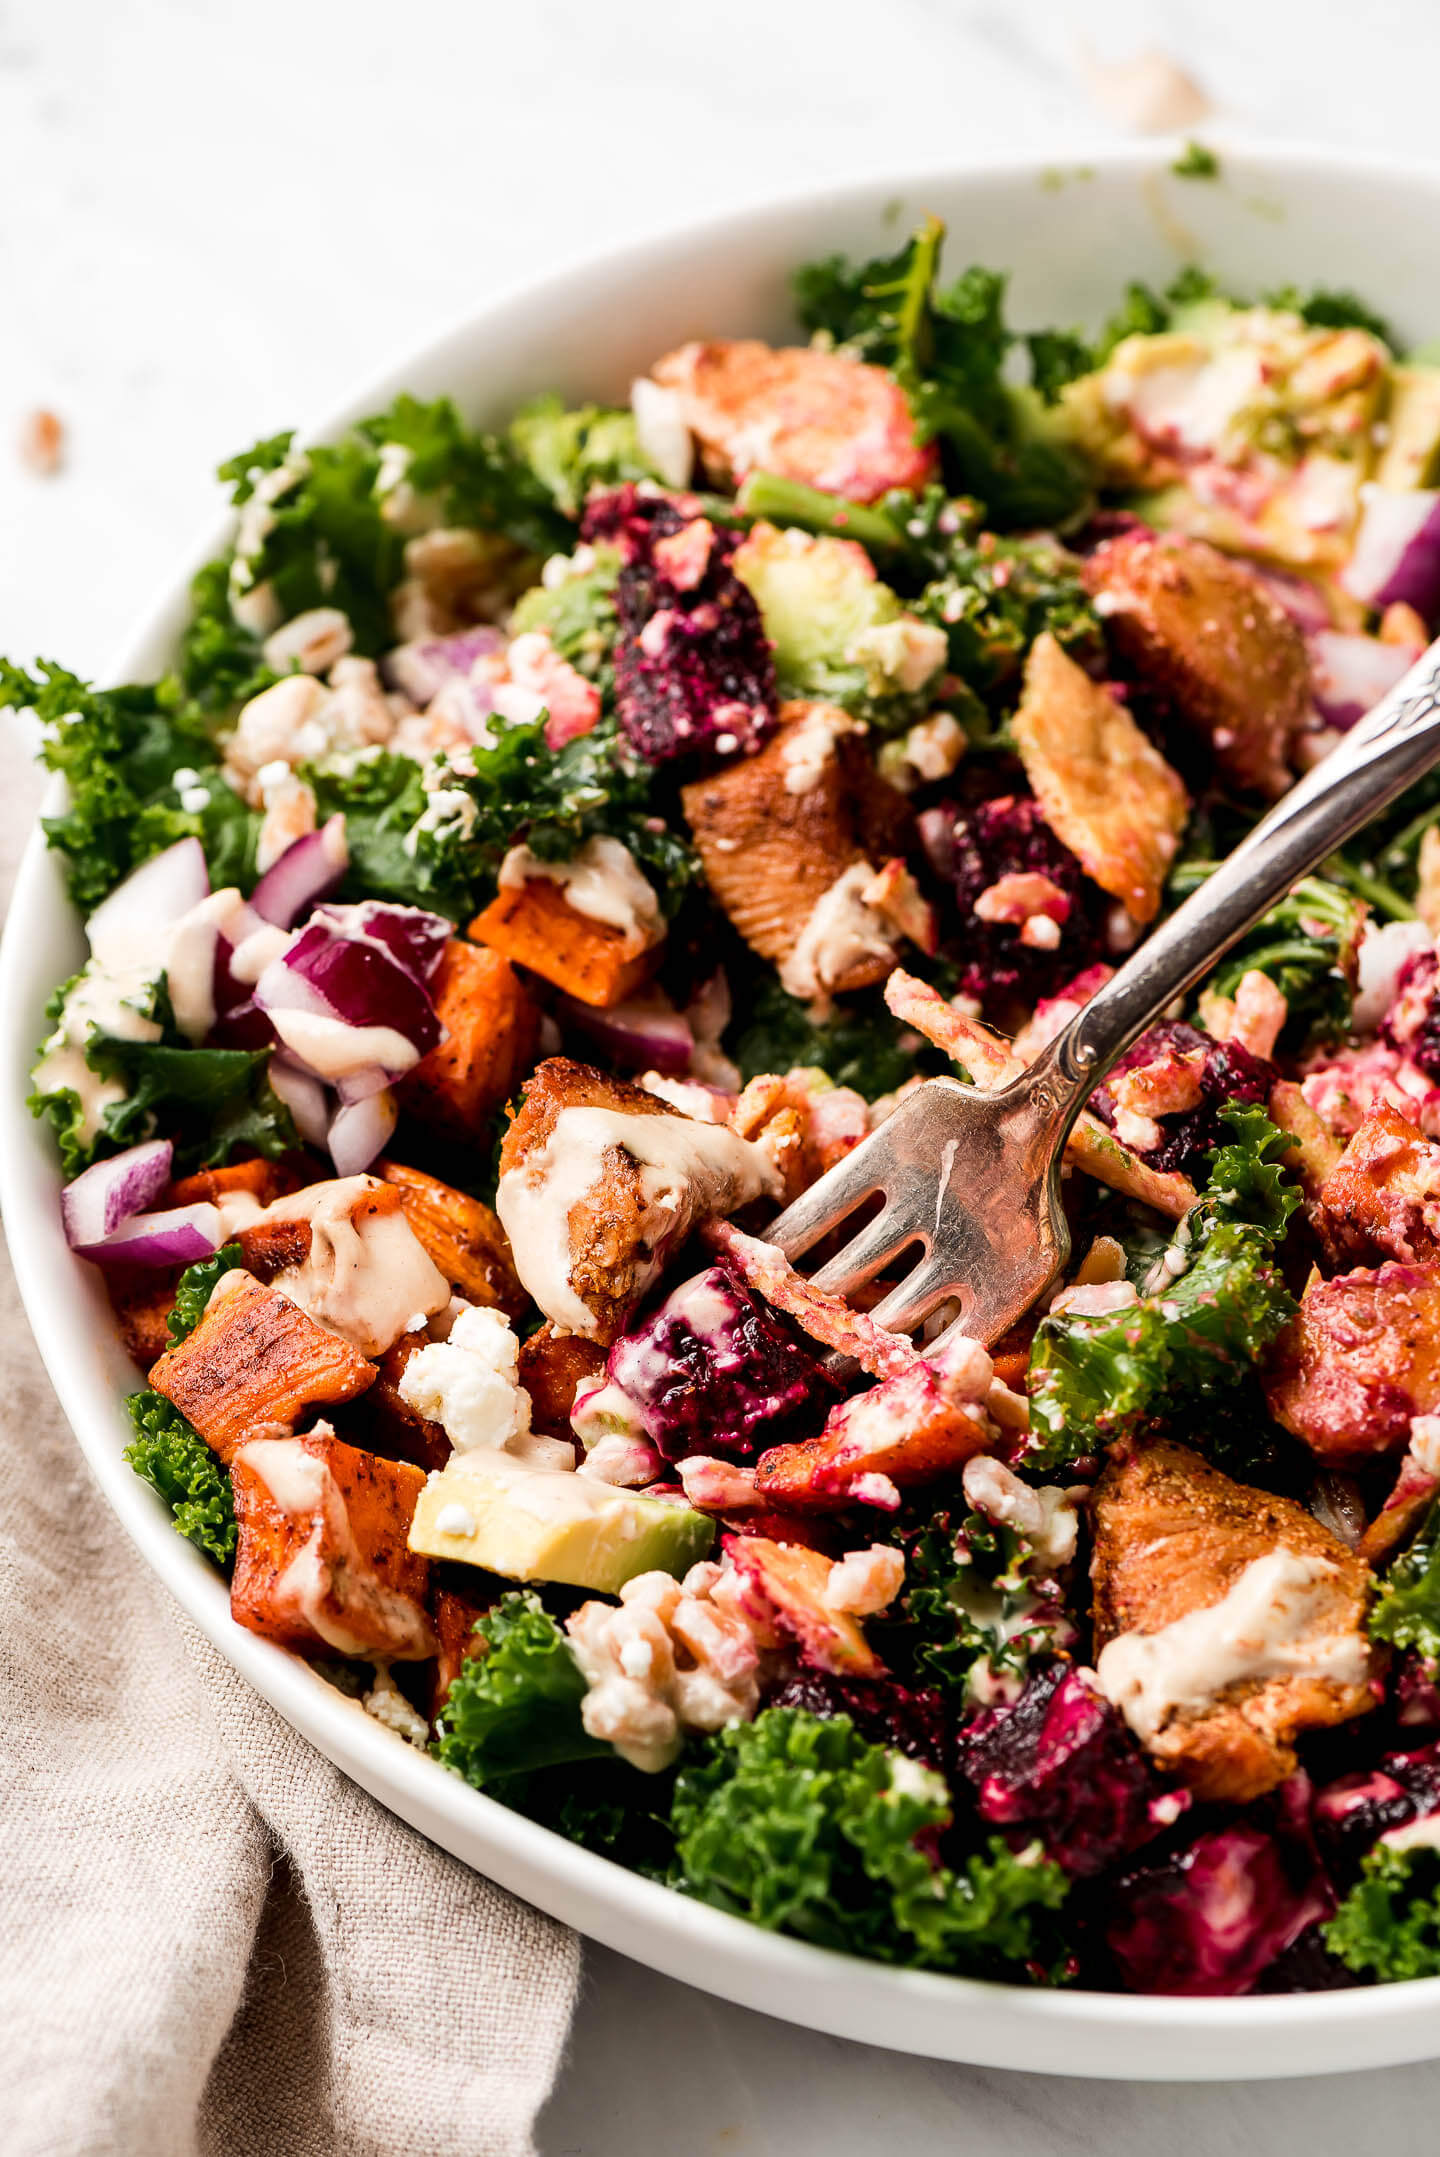 A close up photo of a tossed Kale Salad with Roasted Vegetables.